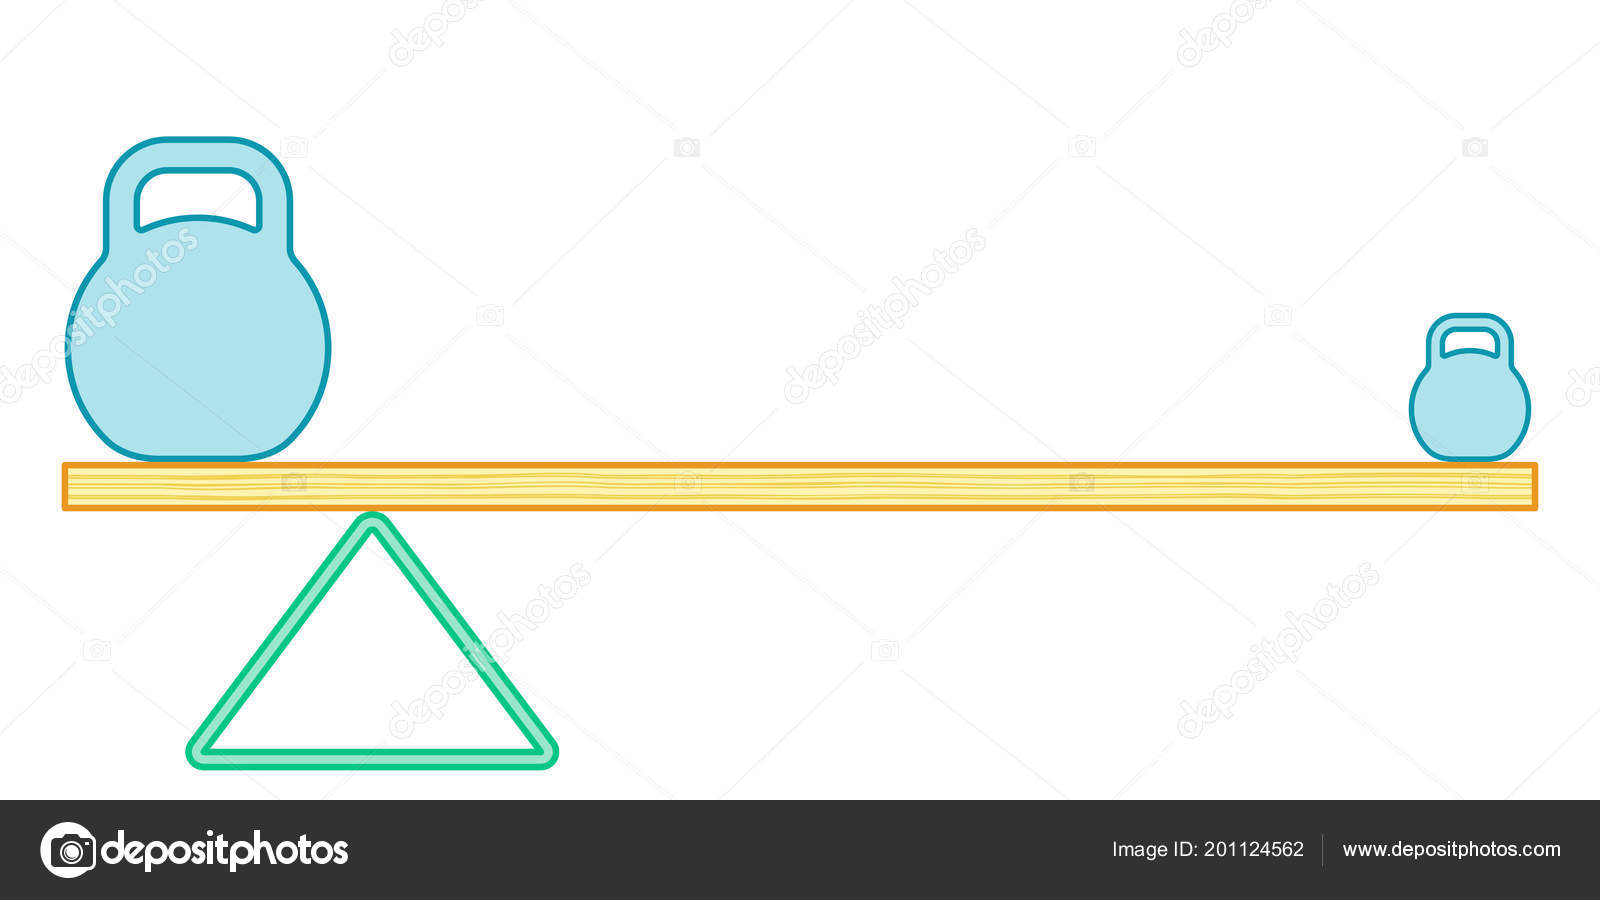 Illustration Of The Simple Lever Beam Balance Vector By AlexanderZam